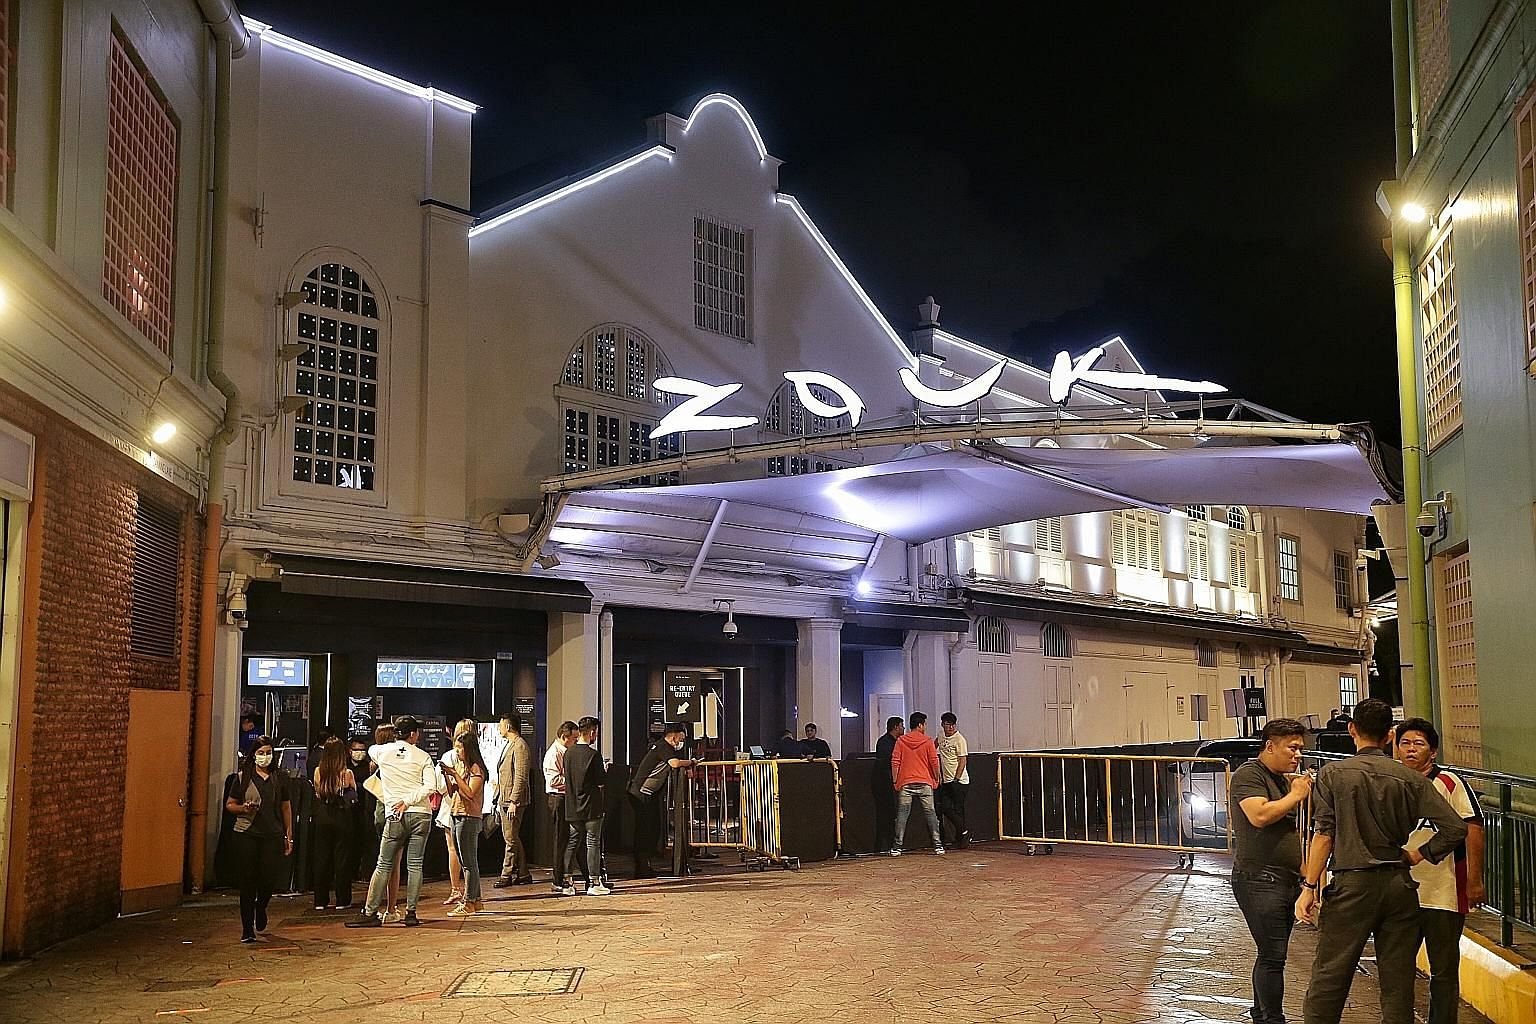 Zouk in Clarke Quay in March, before Singapore's circuit breaker to stem the spread of Covid-19 kicked in the following month. As nightclub activities remain banned in Singapore, Zouk has pursued new revenue streams, including the conversion of its C